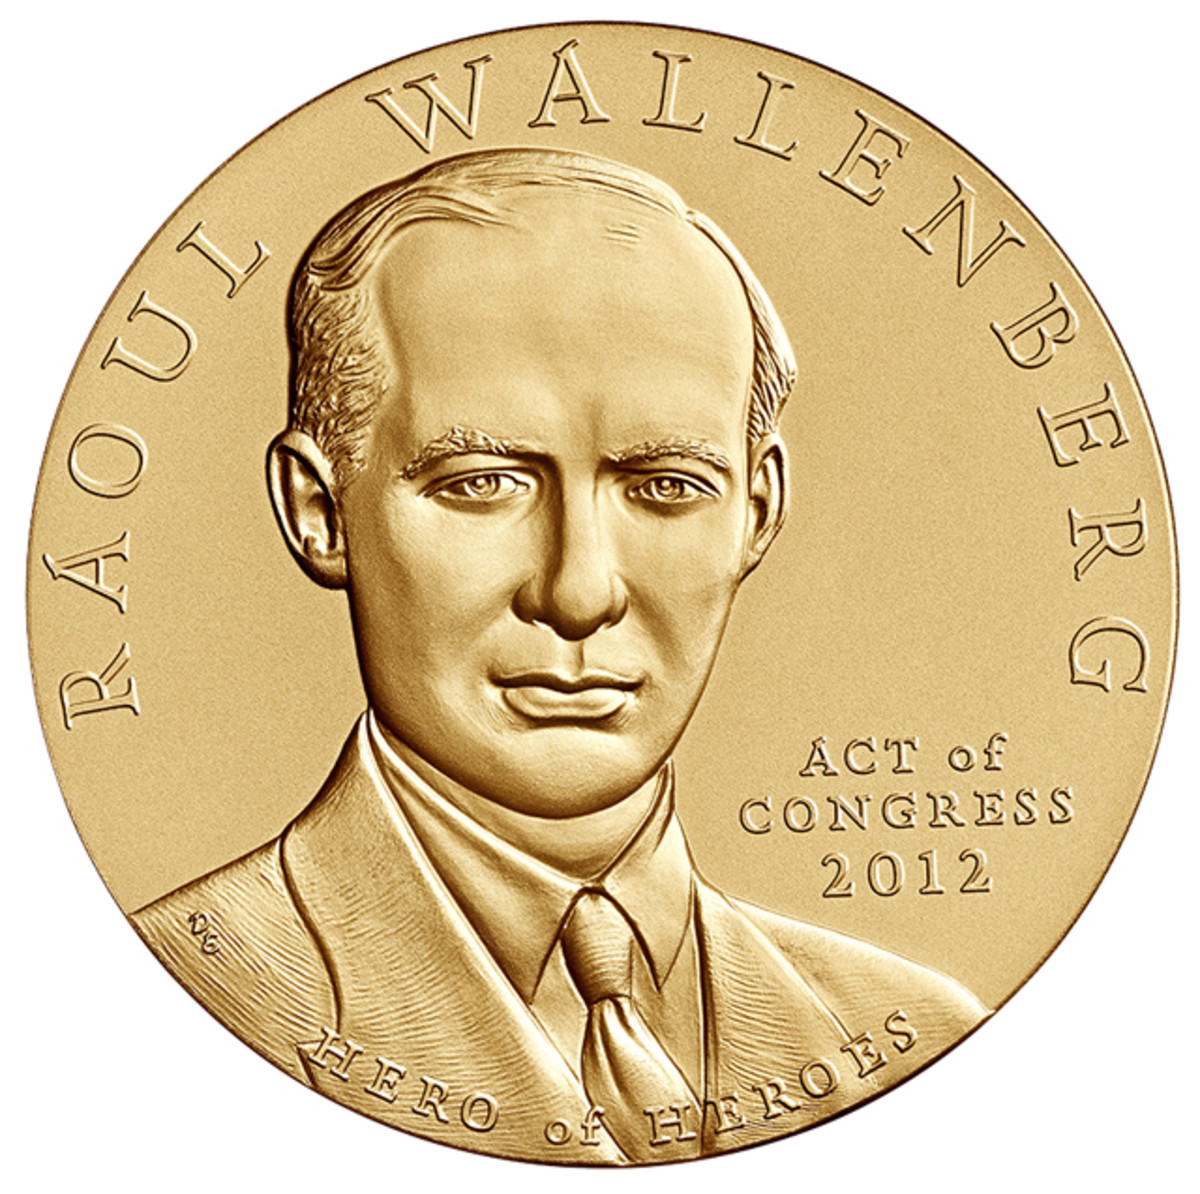 Obverse of the Wallenberg bronze medal